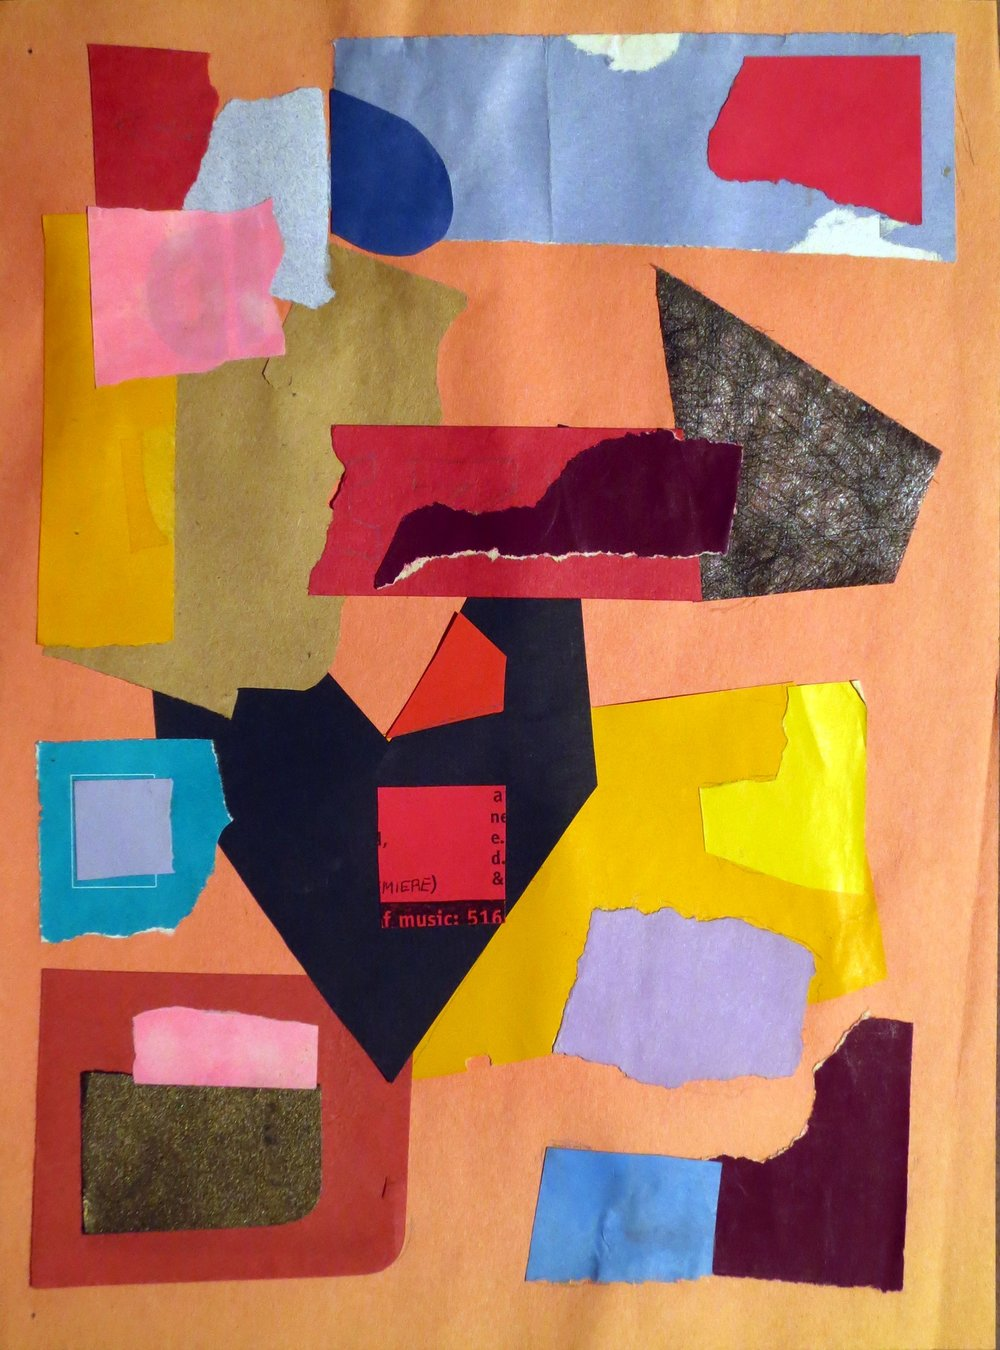 Untitled,  c. 1995-2000 Collage on cardboard 9 x 12 inches  Inquire